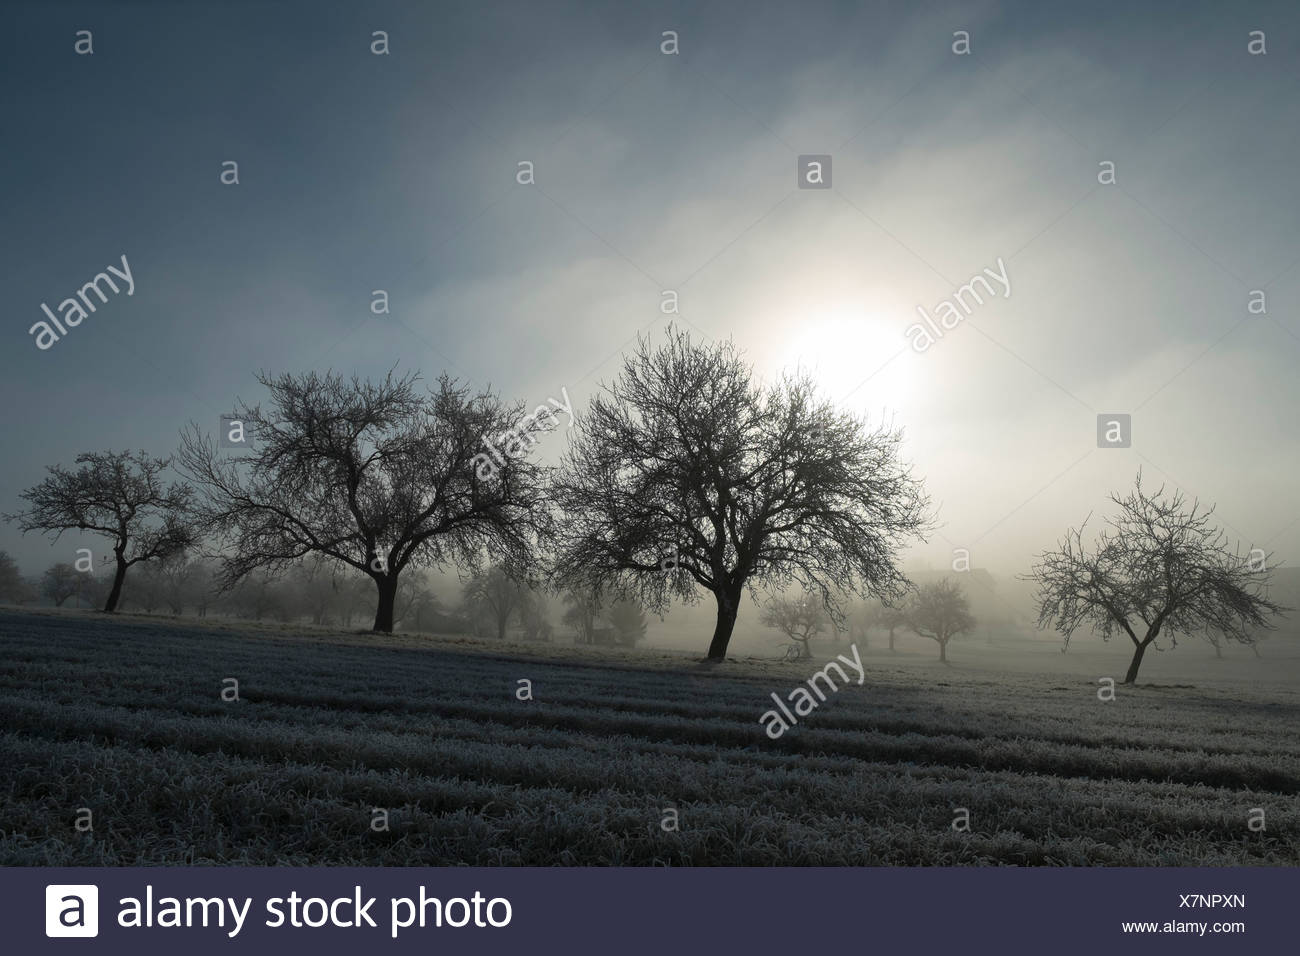 Germany, Baden-Wuerttemberg, Tuttlingen district, meadow with scattered fruit trees and wafts of mist - Stock Image